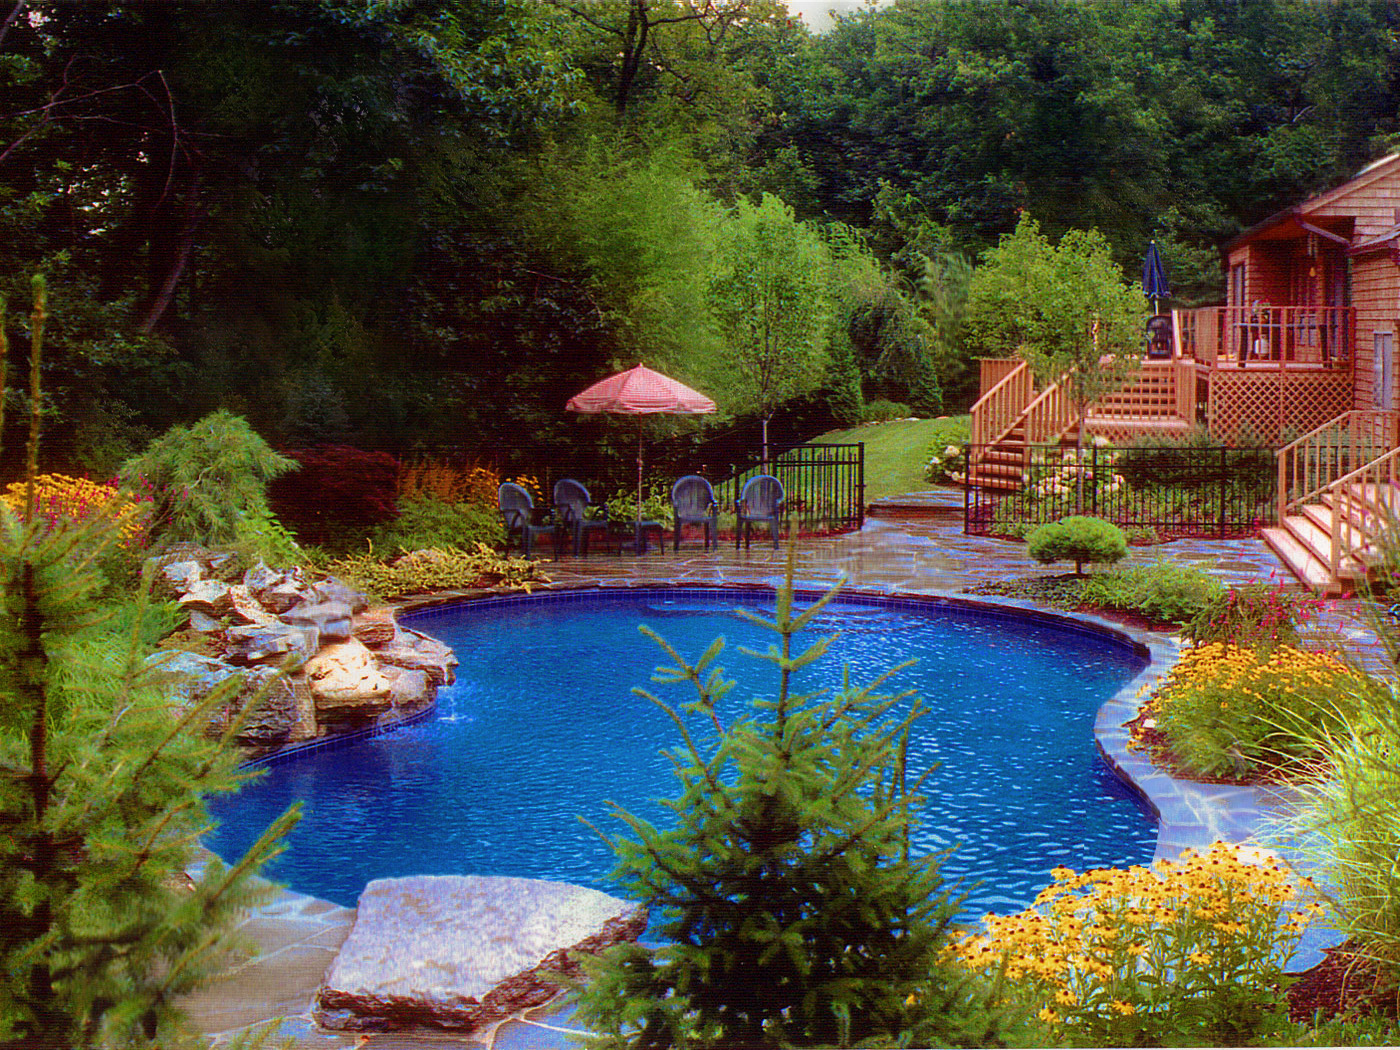 Pond like pool with stonework with stone patio pool cabana and waterfall in Huntington